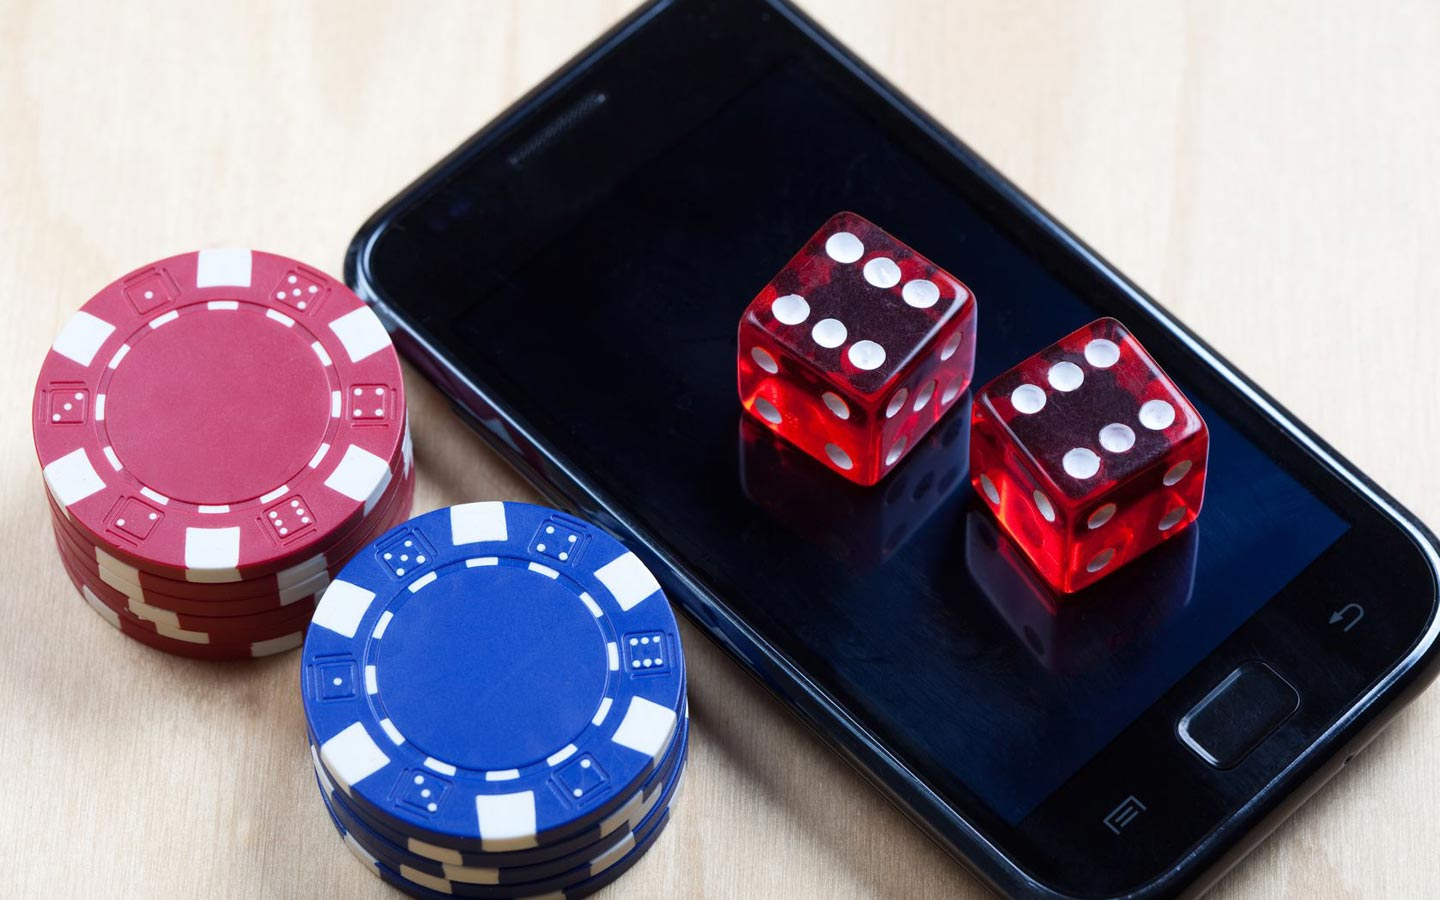 Is Mobile Gaming Safe?